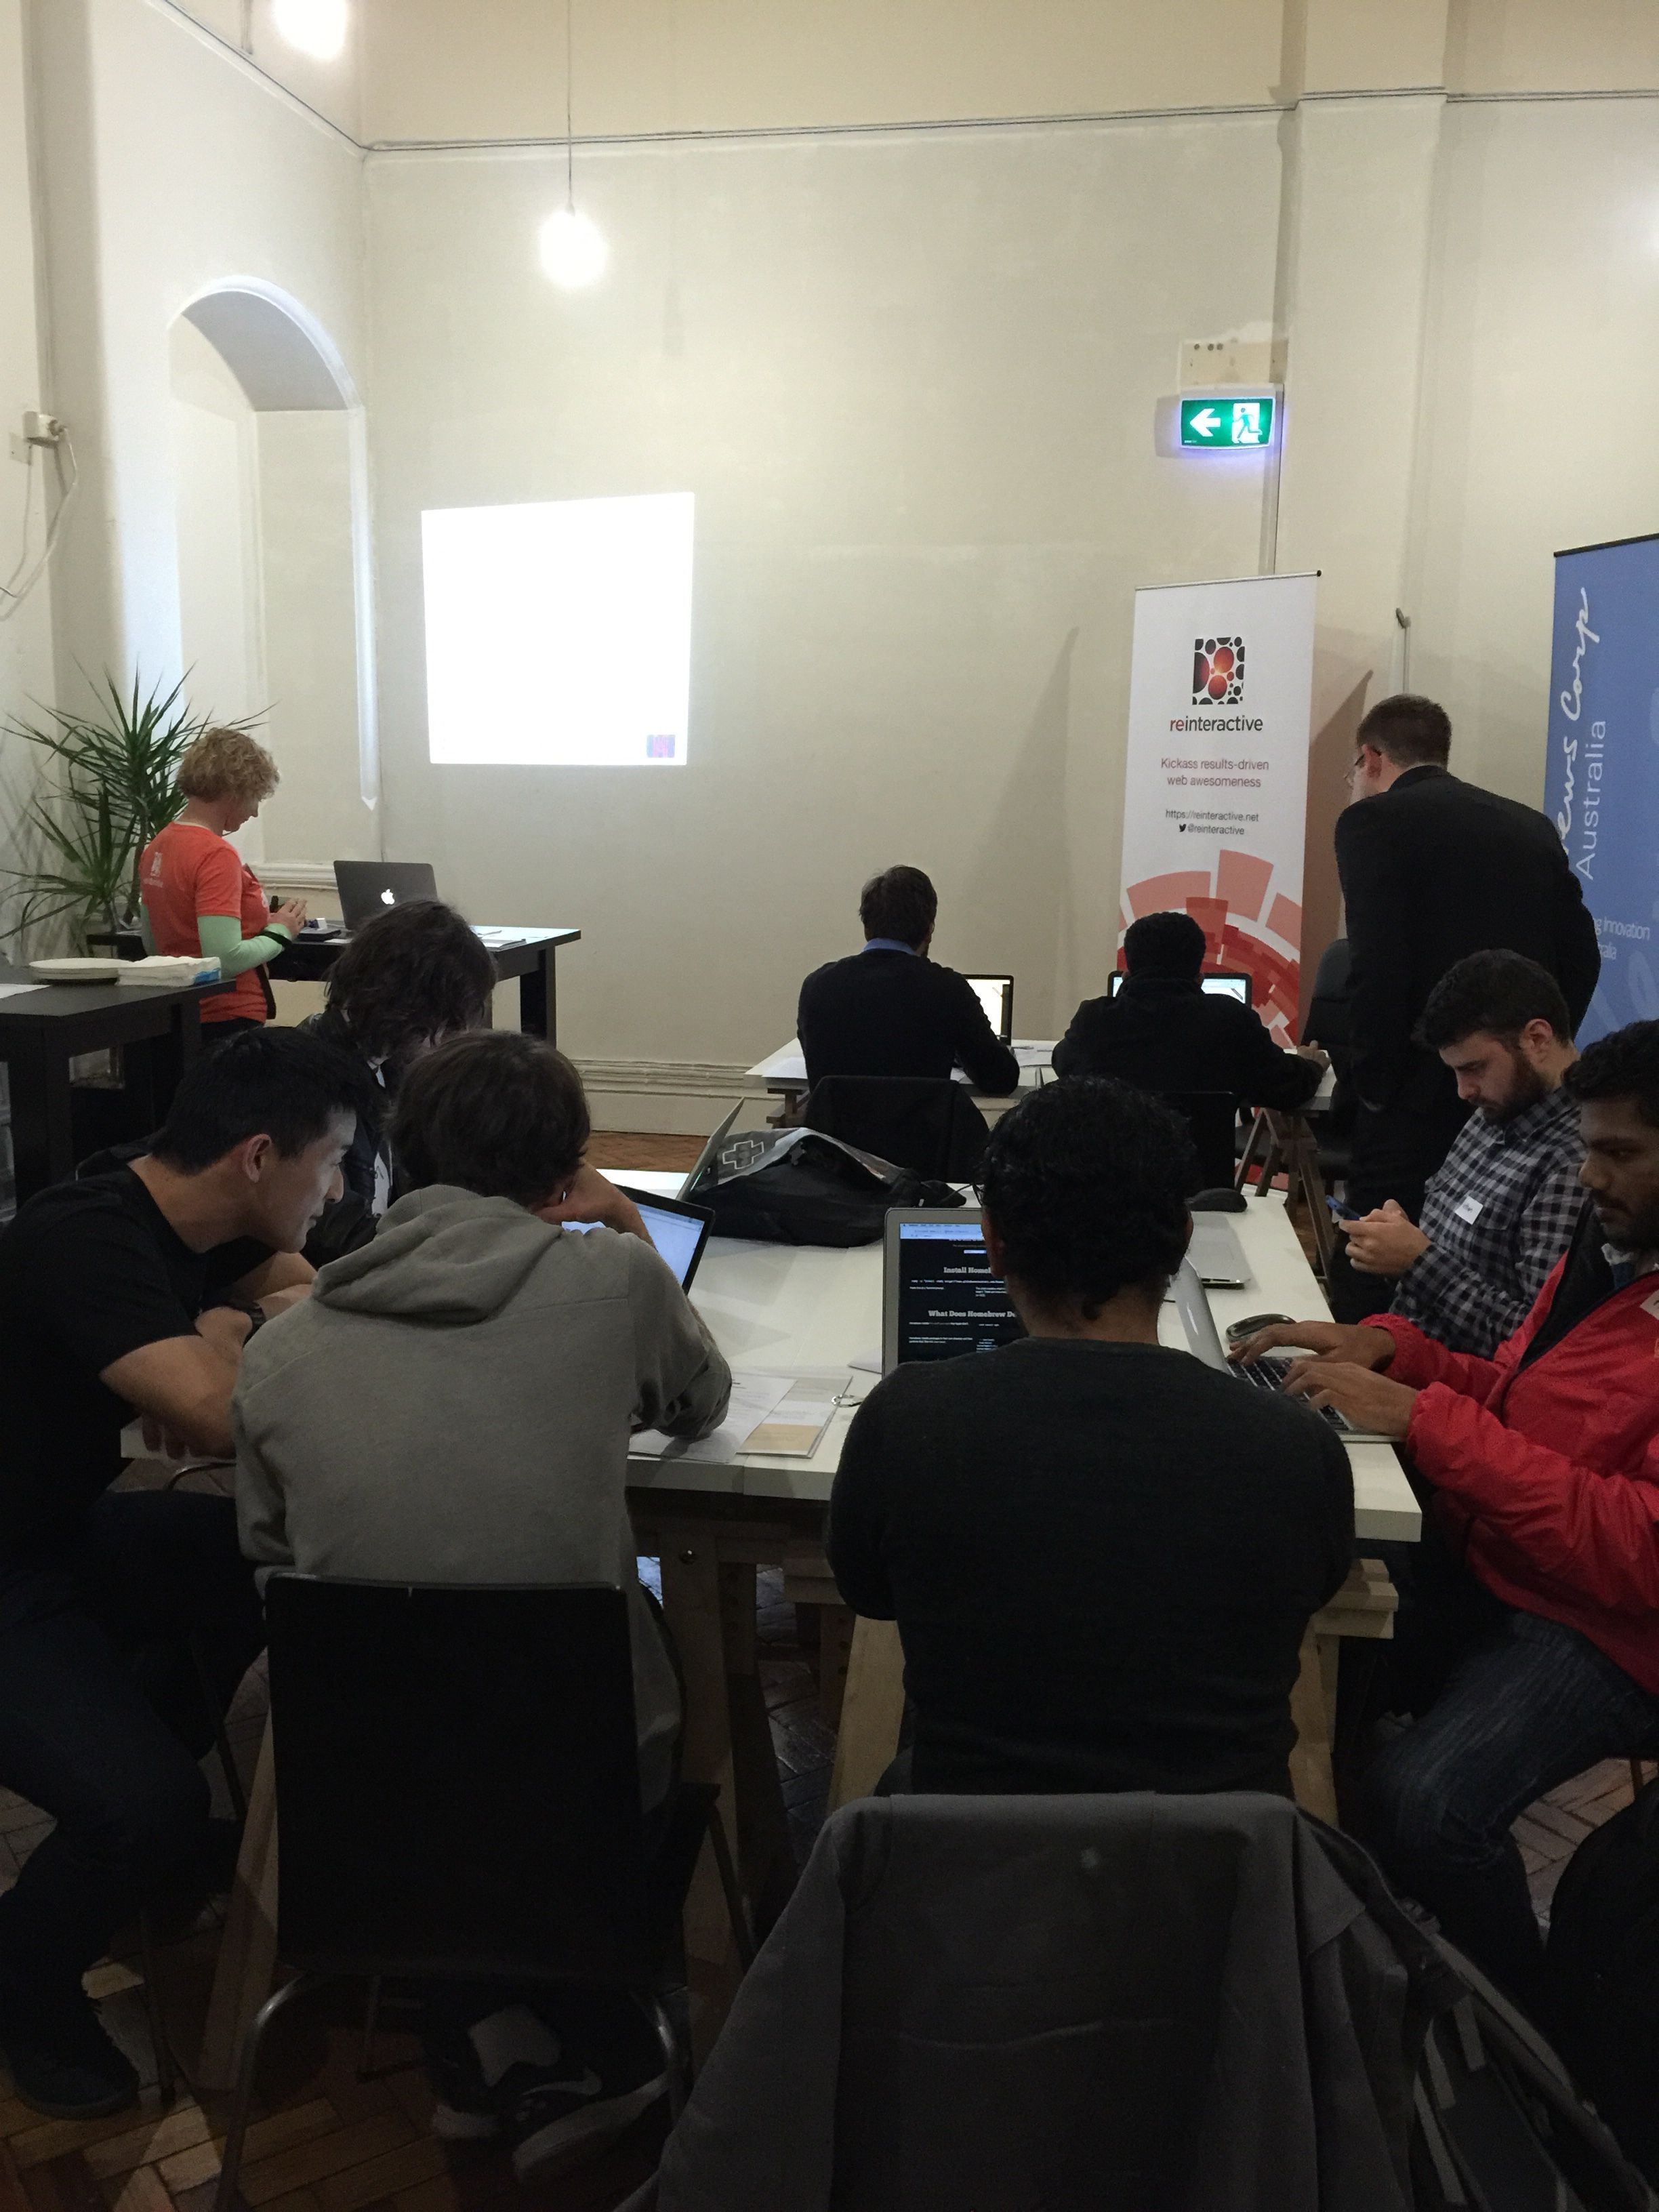 Adelaide.rb Meetup Group